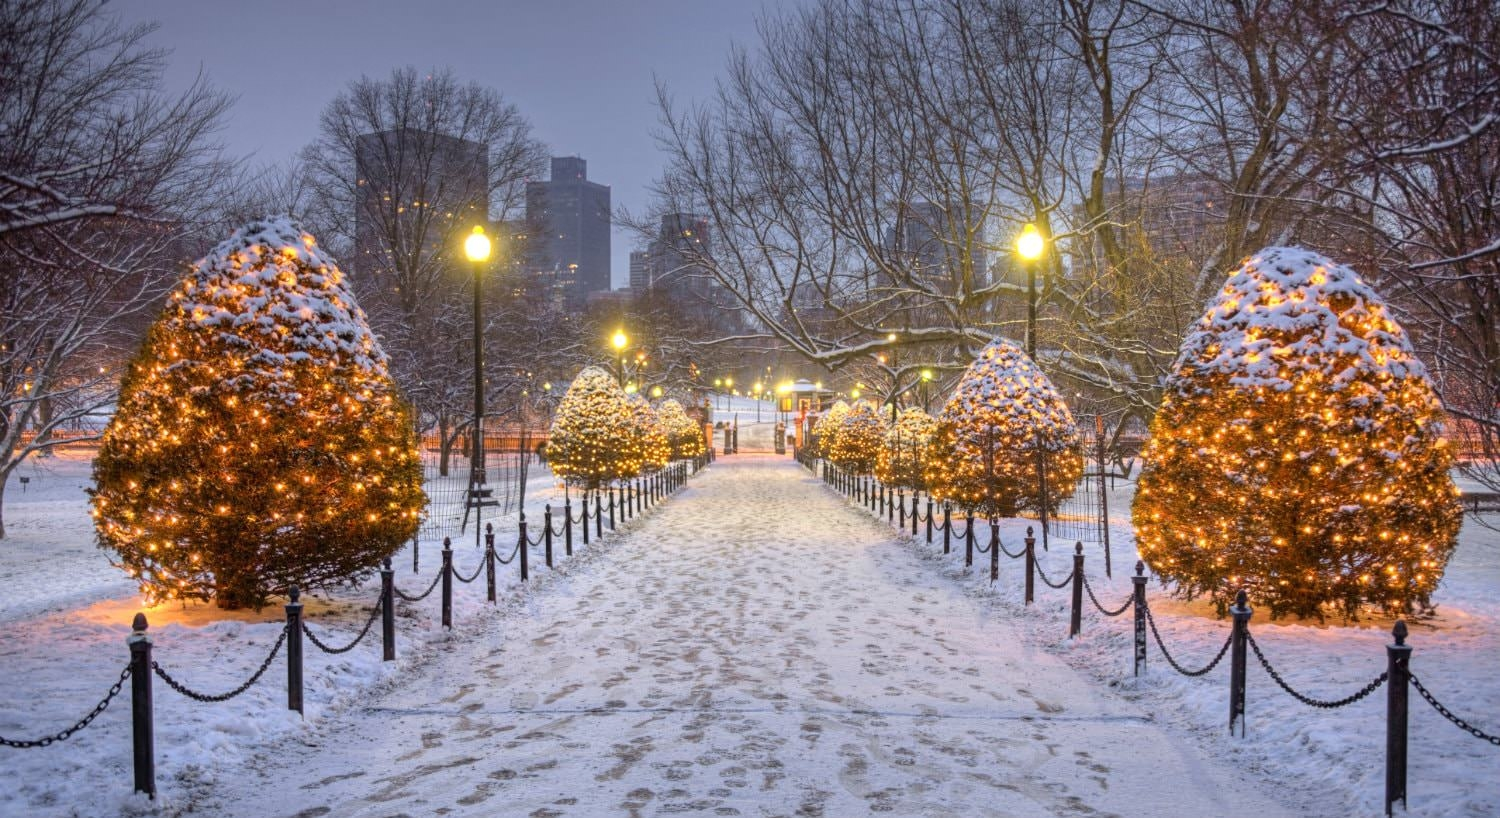 Snowy walkway through a park lined with brightly lit lamp posts and trees covered in white lights and glimpse of city in background